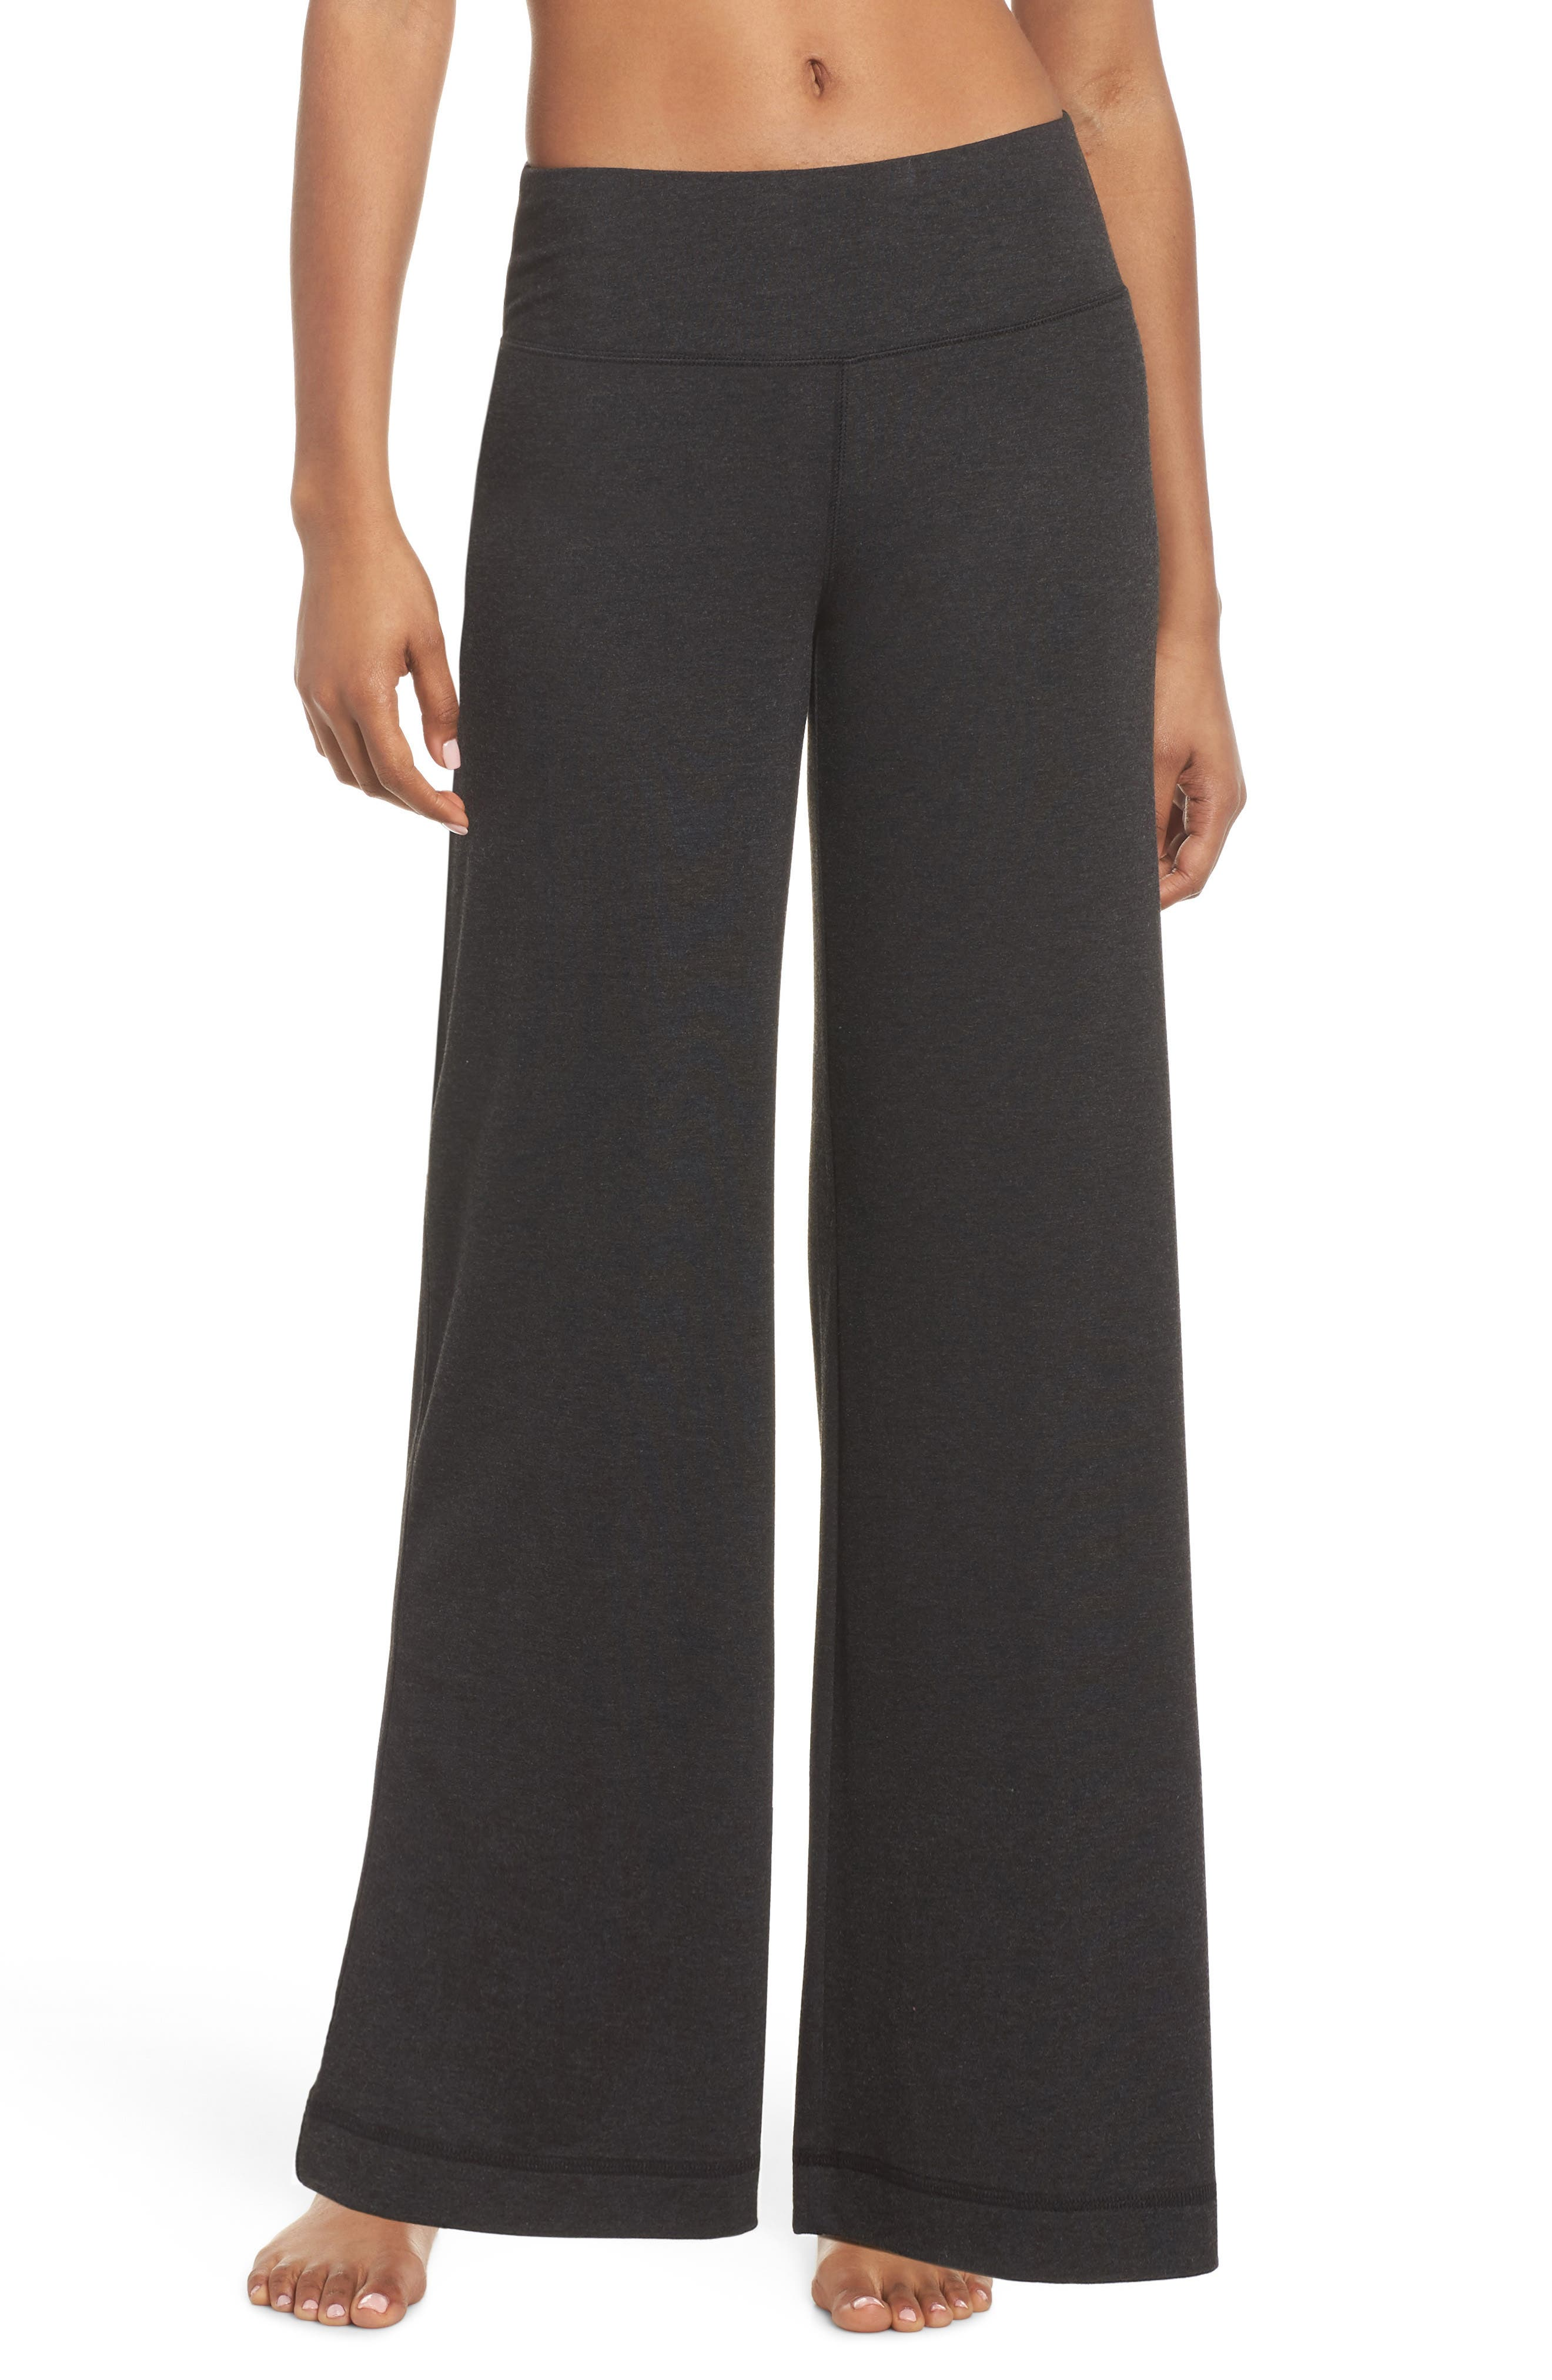 Go With The Flow Pants,                             Main thumbnail 1, color,                             GREY DARK CHARCOAL HEATHER